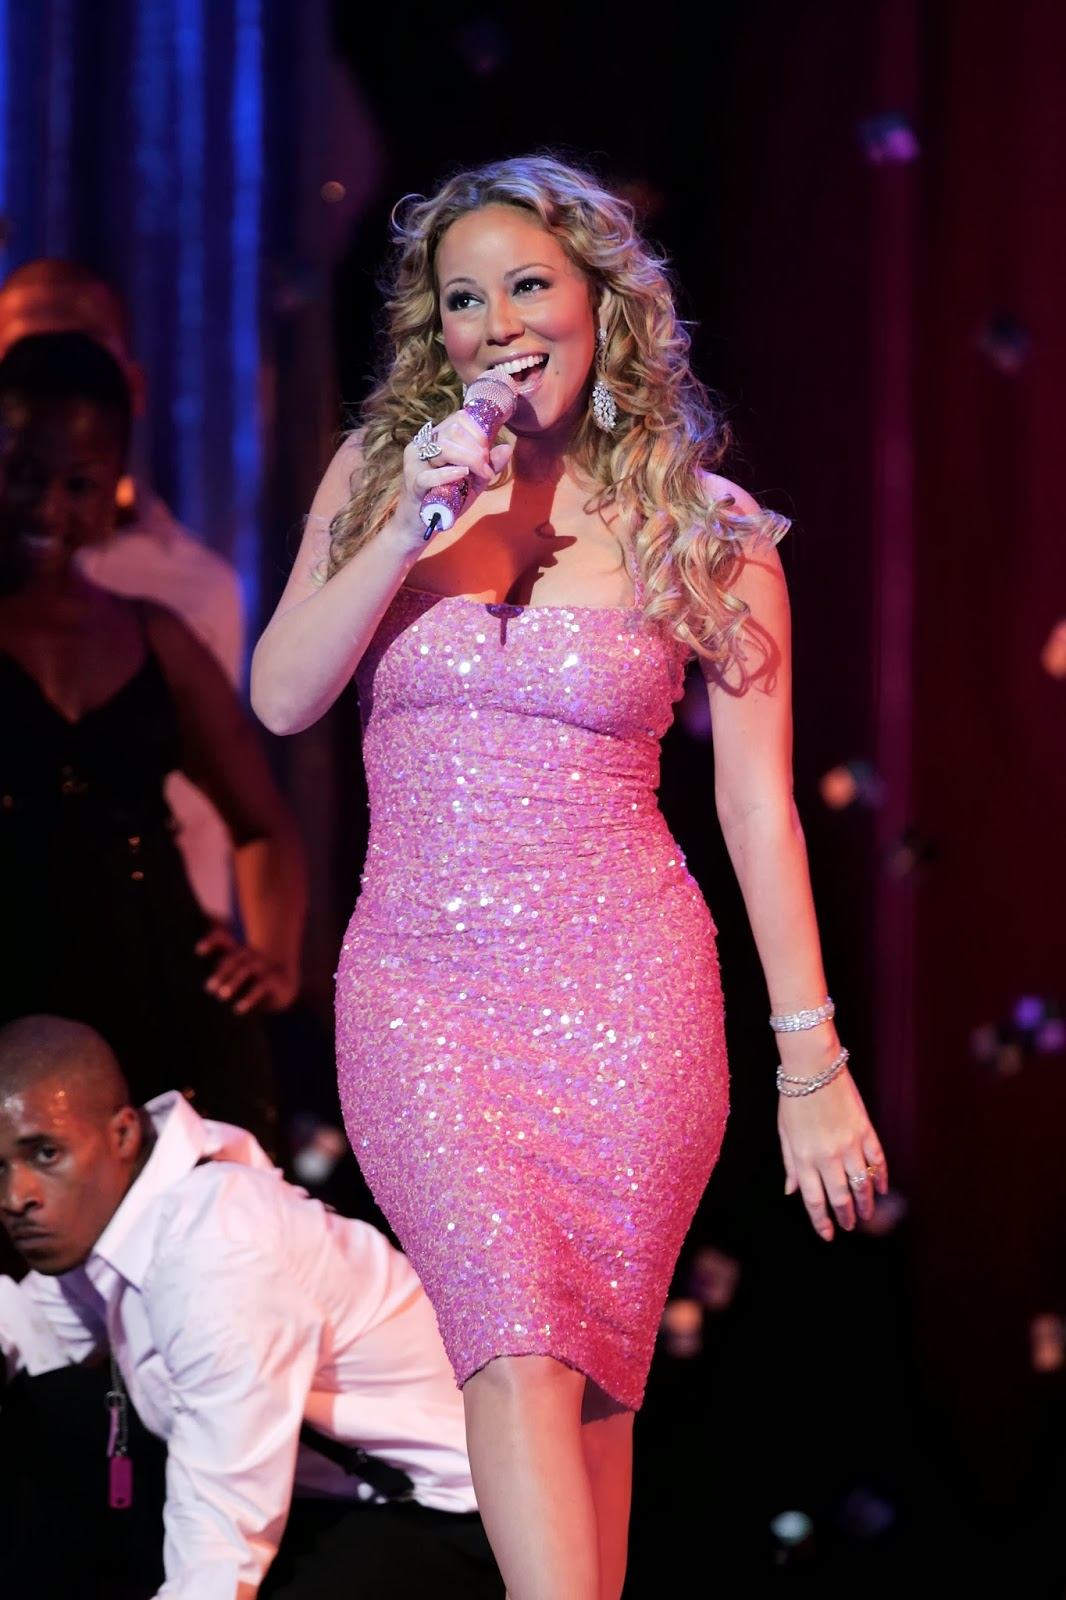 Live on Stage: Mariah Carey - ASDAs Tickled Pink (2005-09-28)